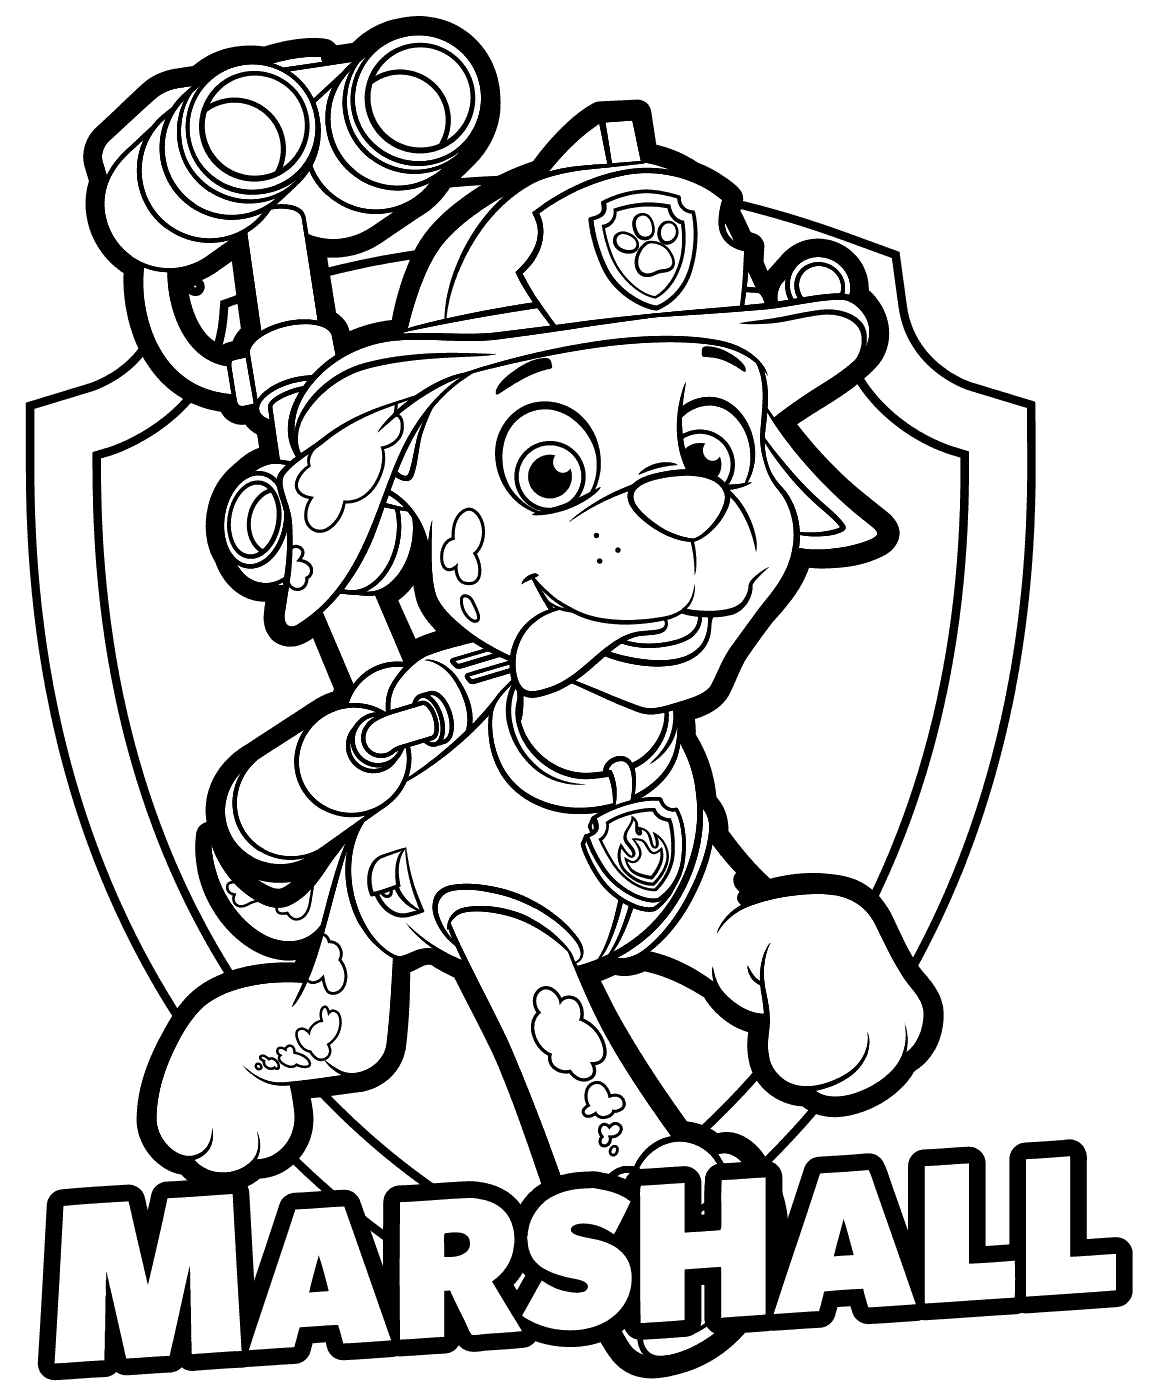 paw patrol coloring pages free paw patrol coloring pages printable free coloring sheets coloring paw free patrol pages